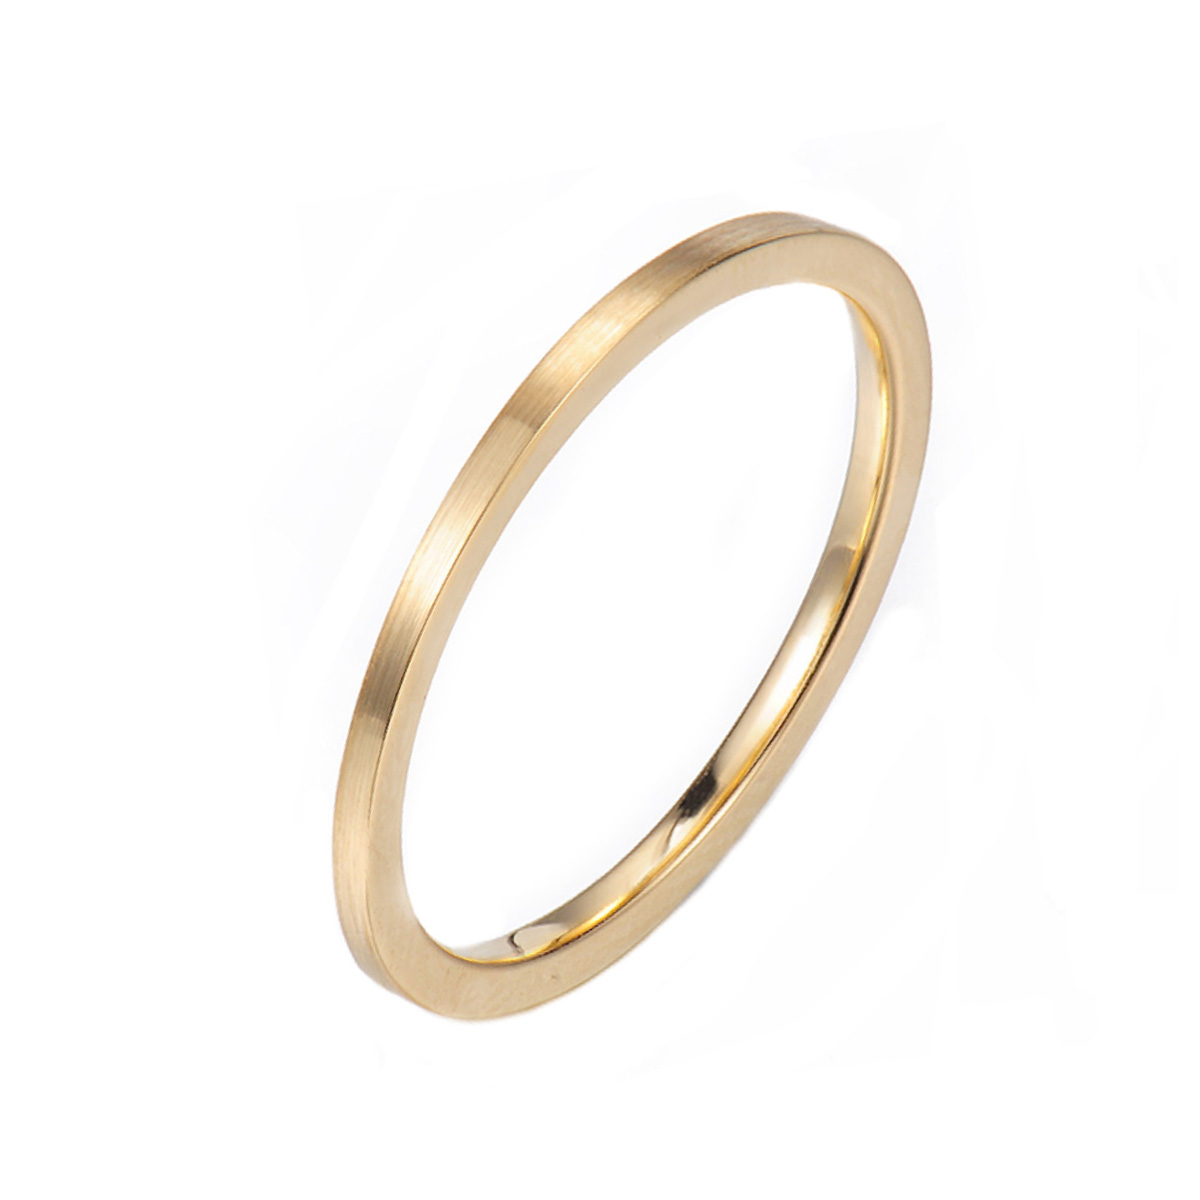 Z-Slim-Chic-1mm-Satin-Gold-Band-Ring-Guard-Spacer